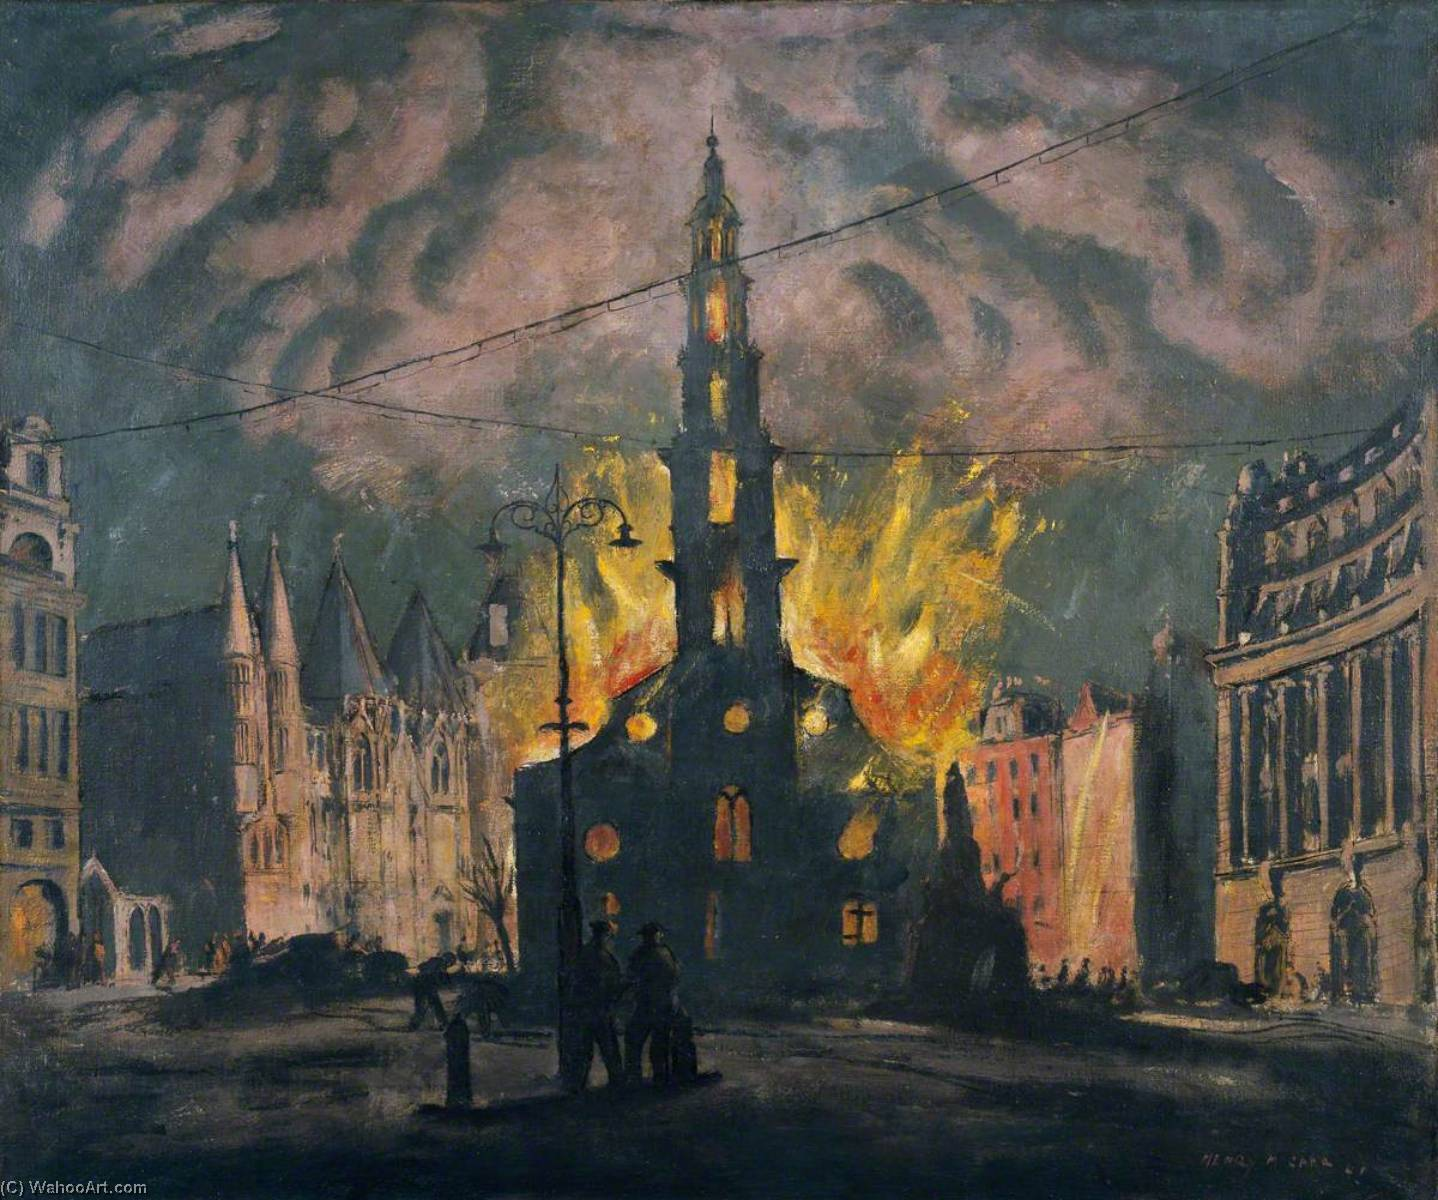 St Clement Dane's Church on Fire after Being Bombed, Oil On Canvas by Henry Marvell Carr